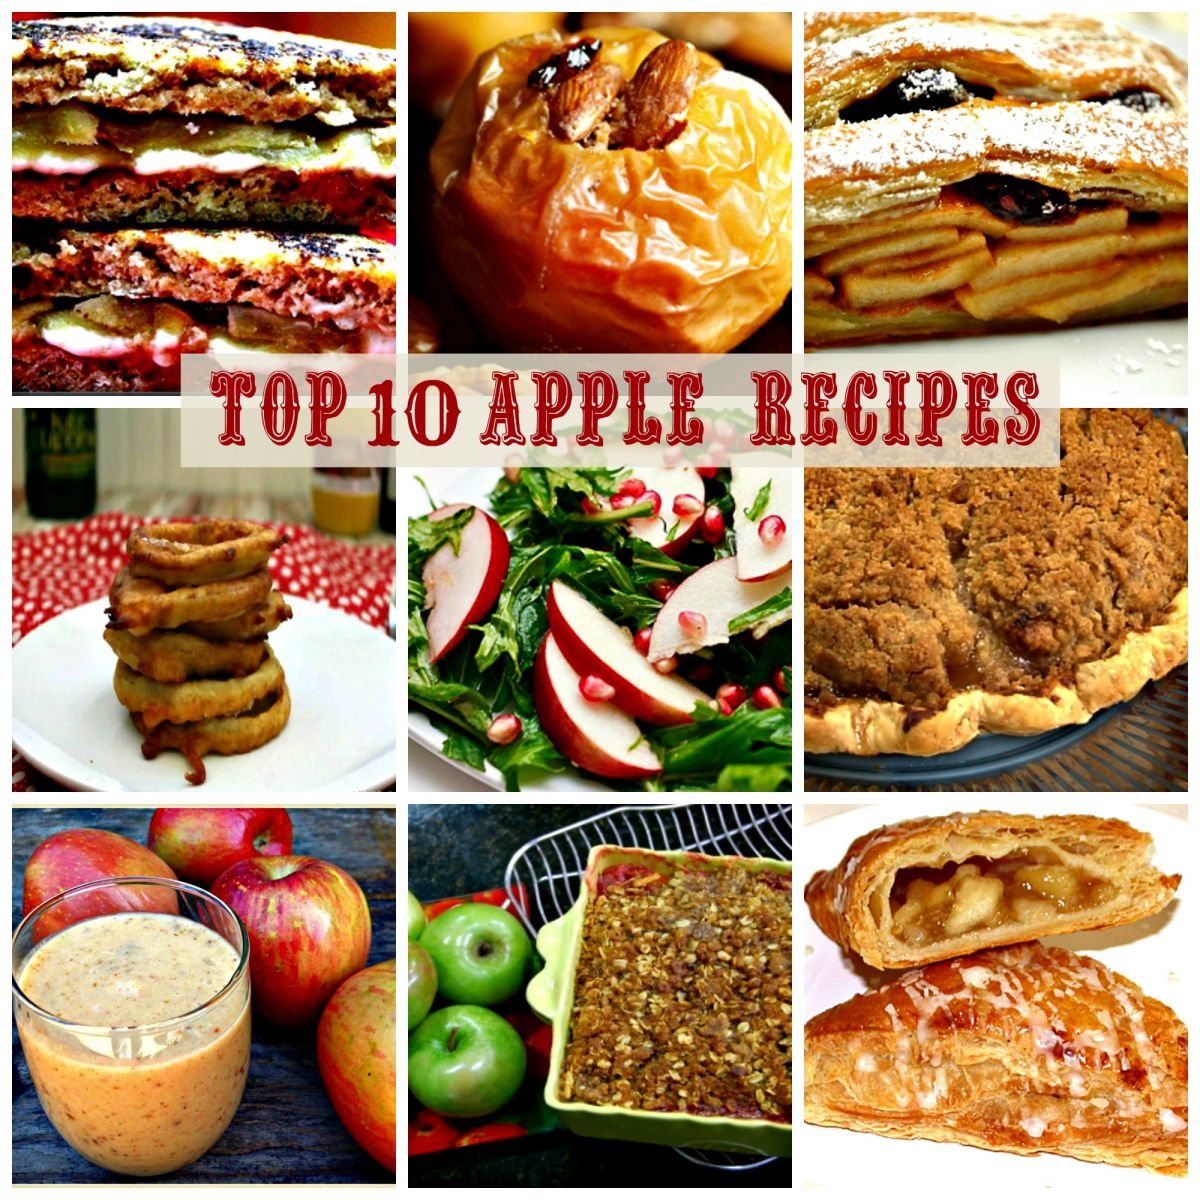 Top 10 Apple Recipes